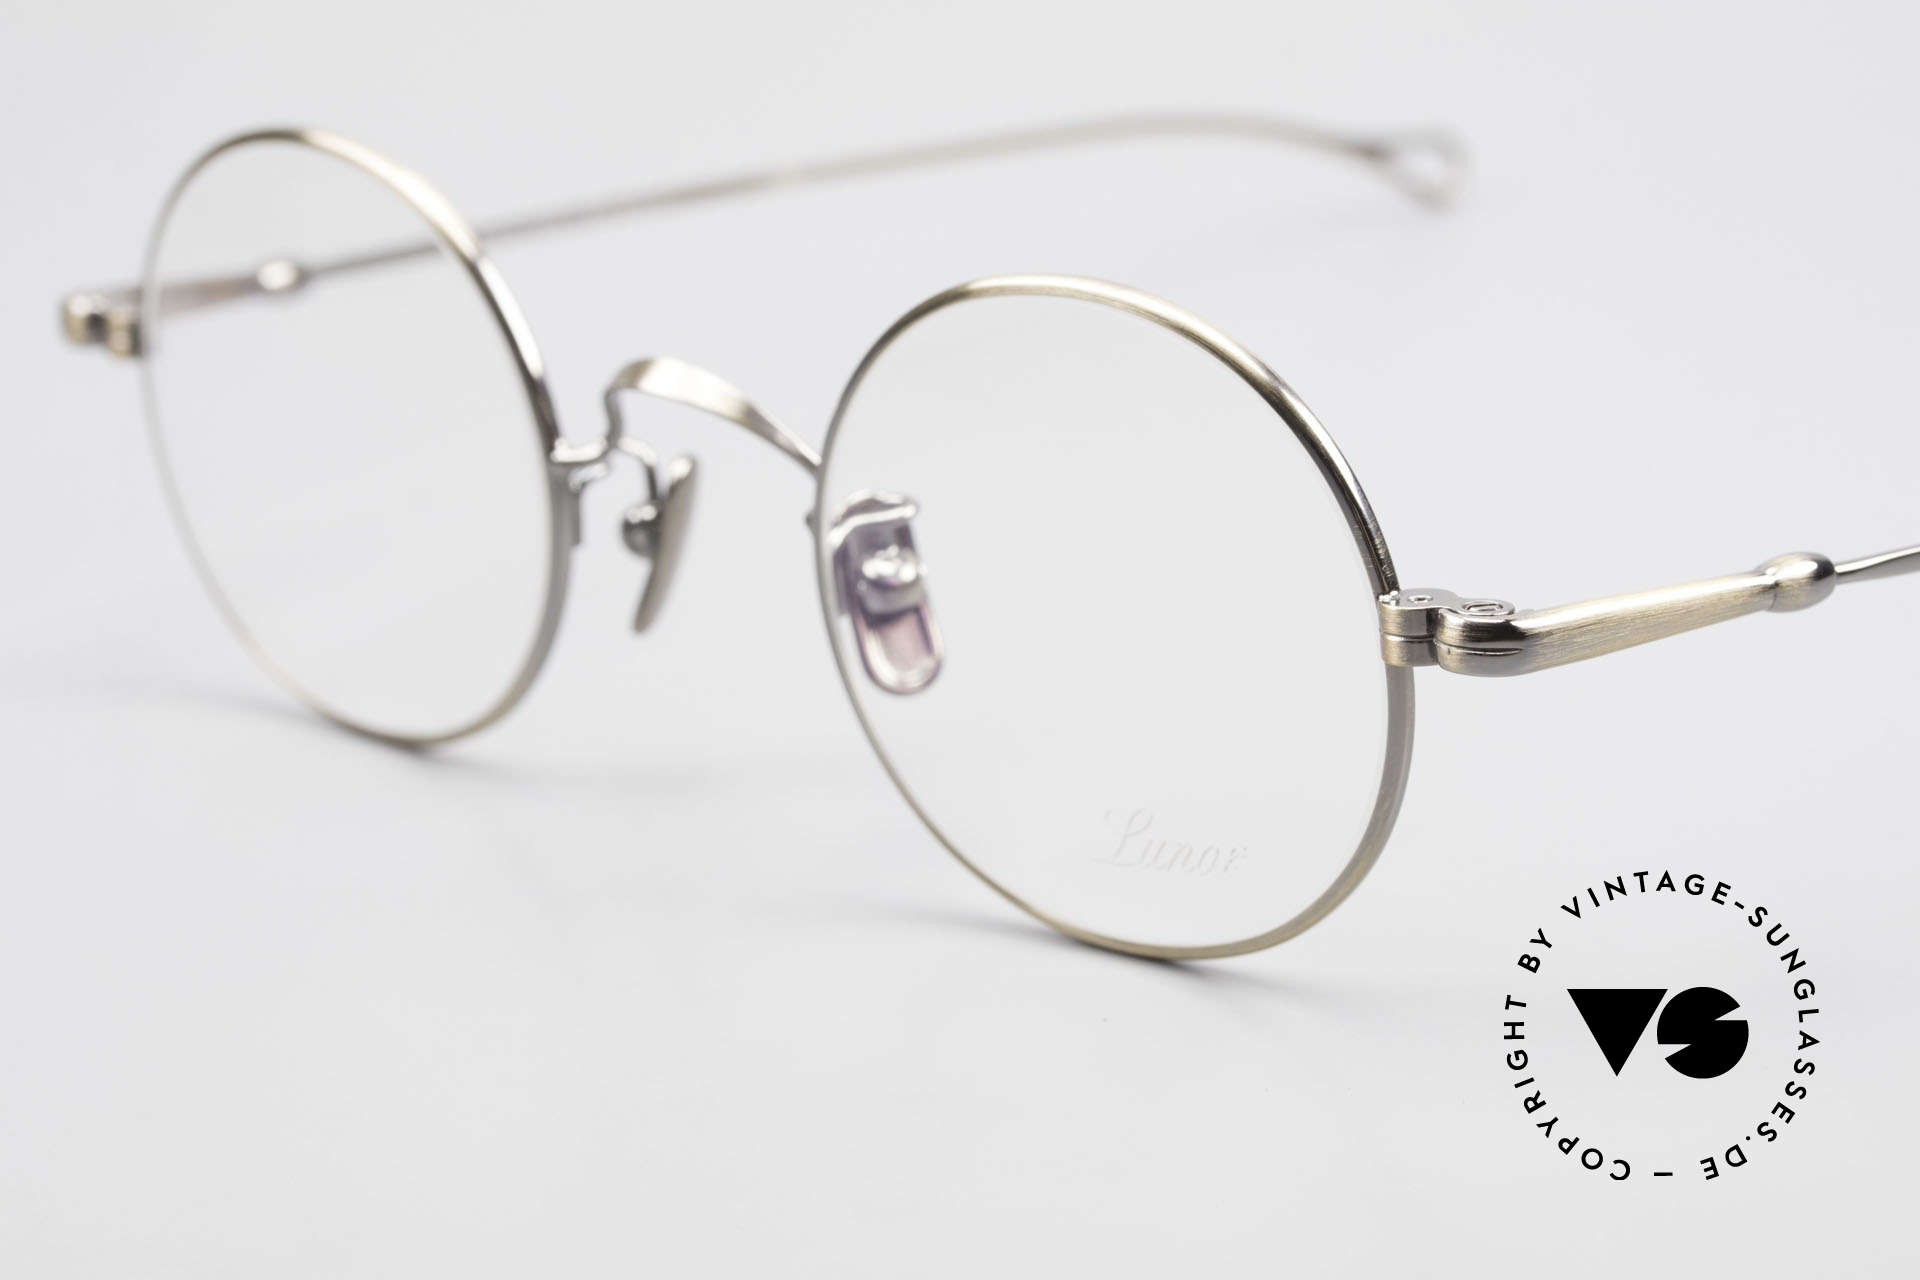 Lunor V 110 Round Lunor Glasses Vintage, model V110: an eyewear classic for ladies & gentlemen, Made for Men and Women